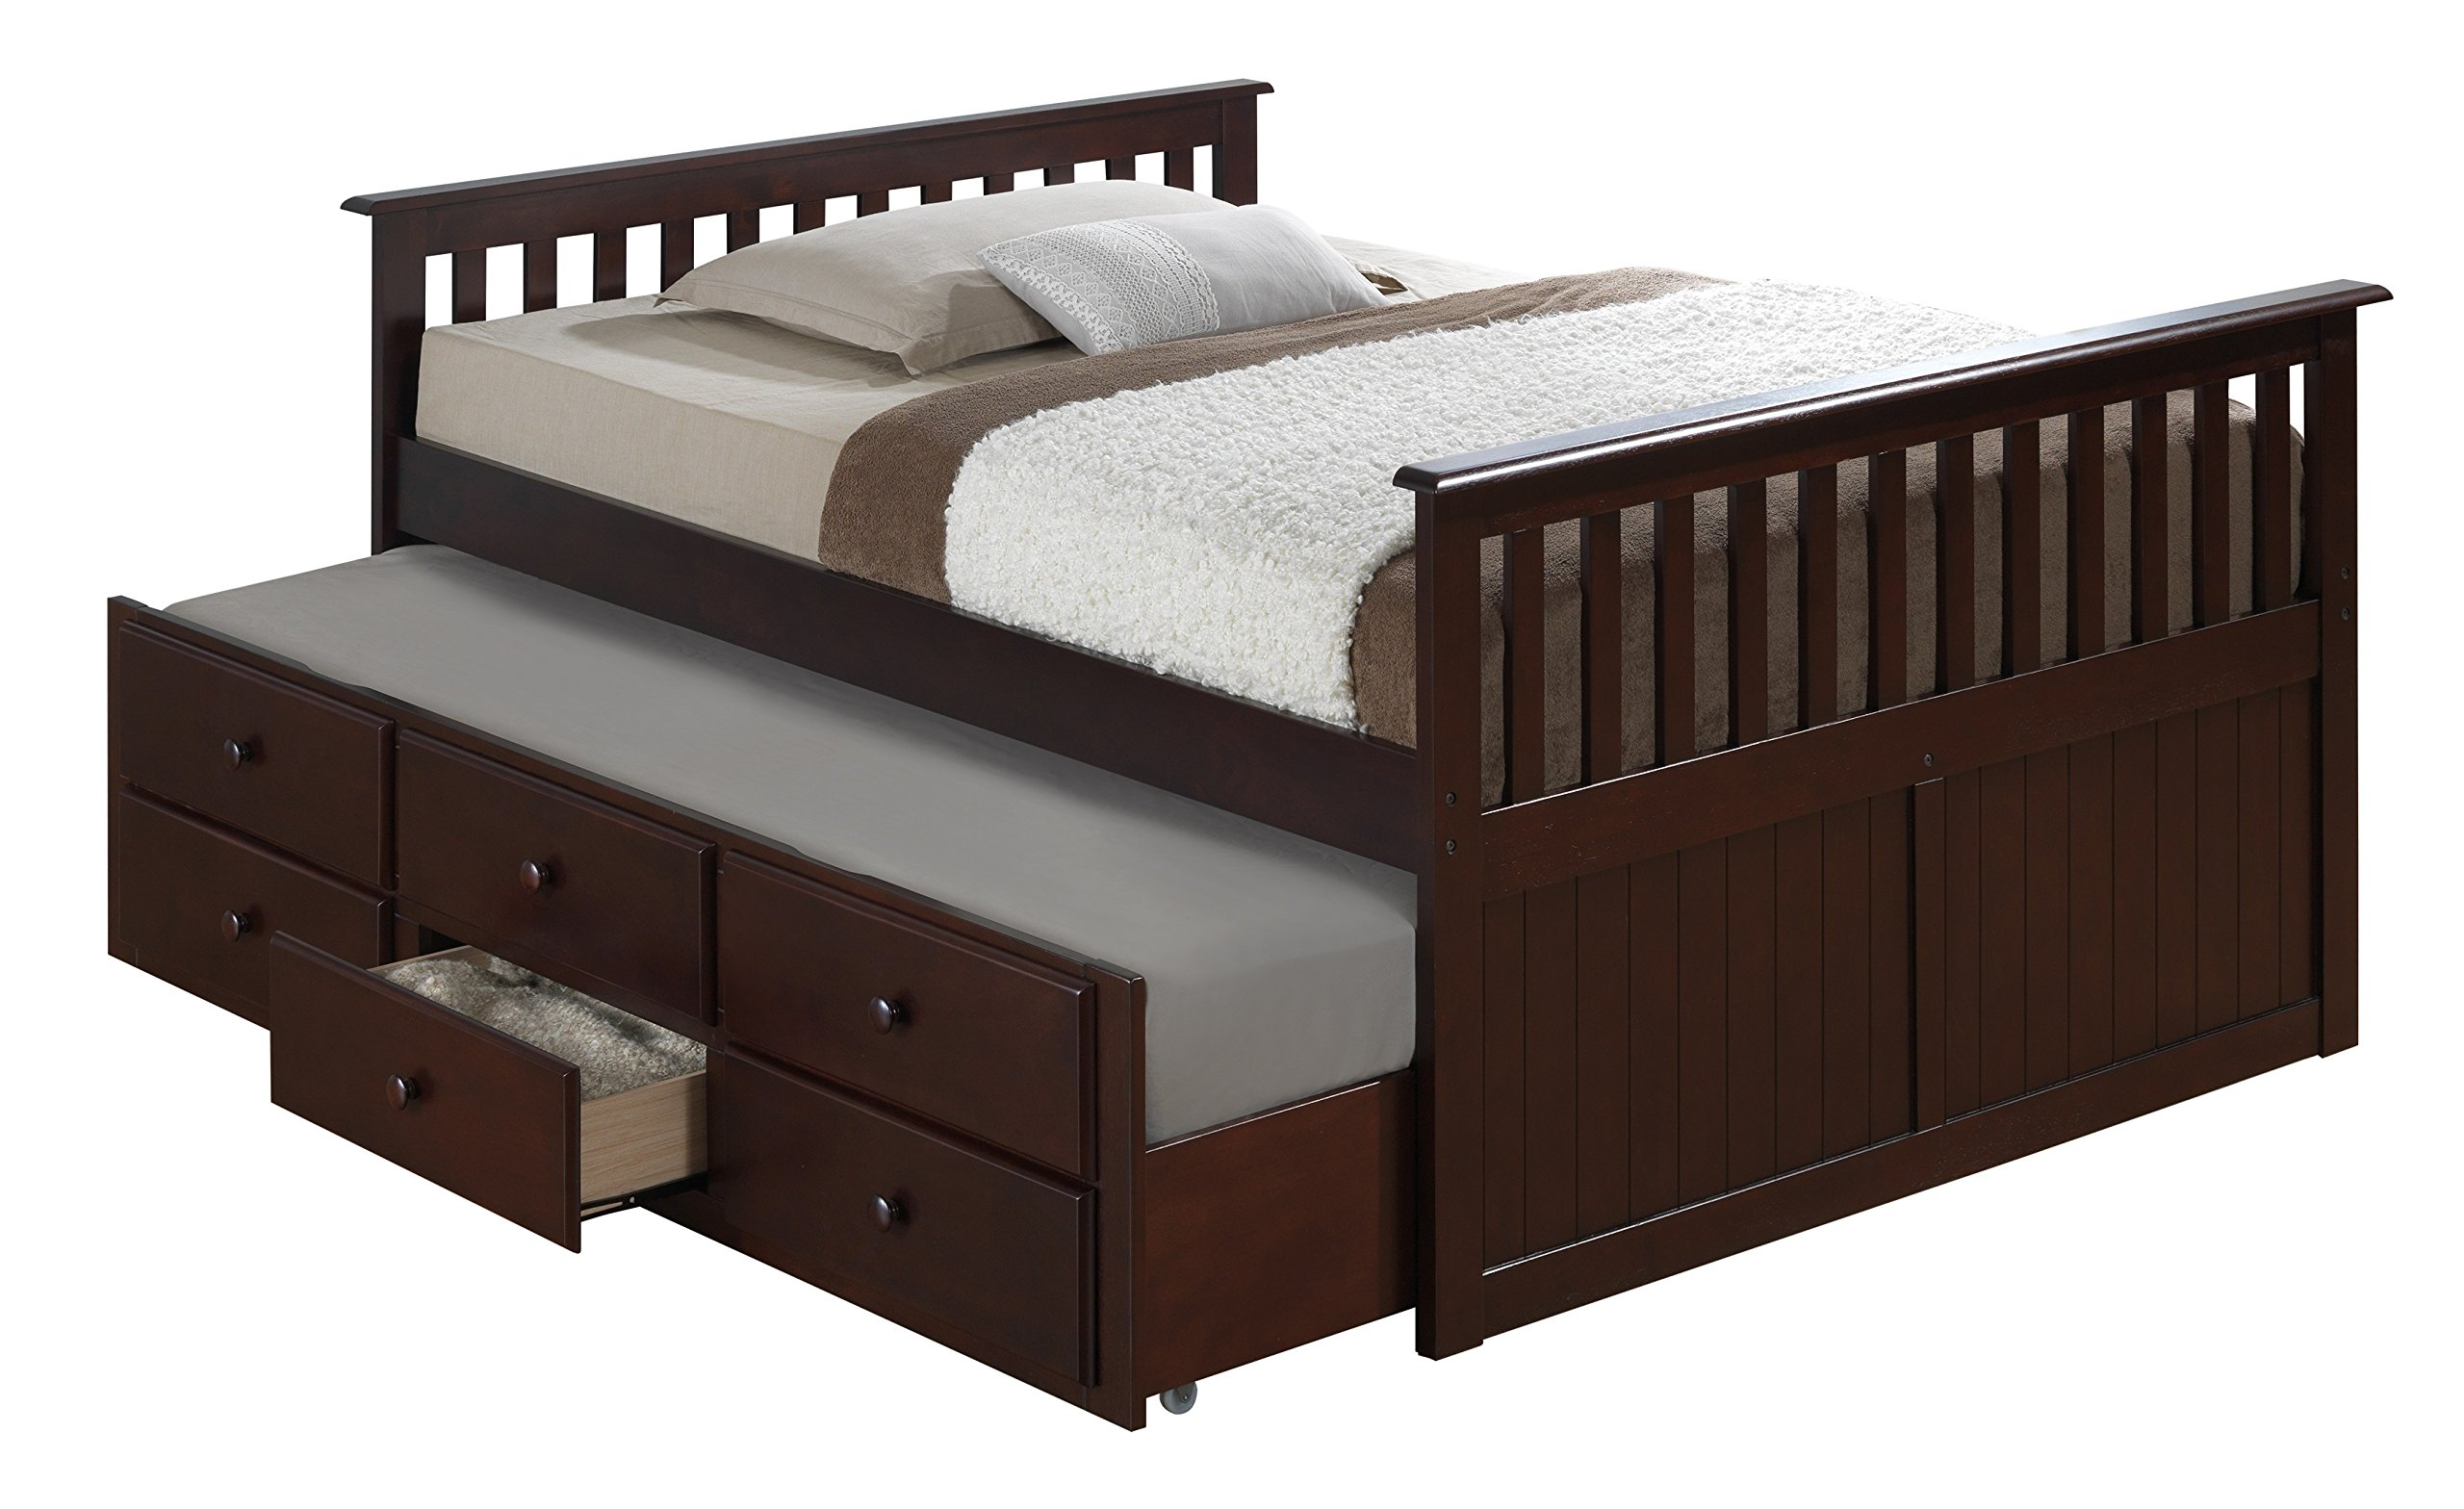 Broyhill Kids Marco Island Full Captain's Bed with Trundle, Espresso